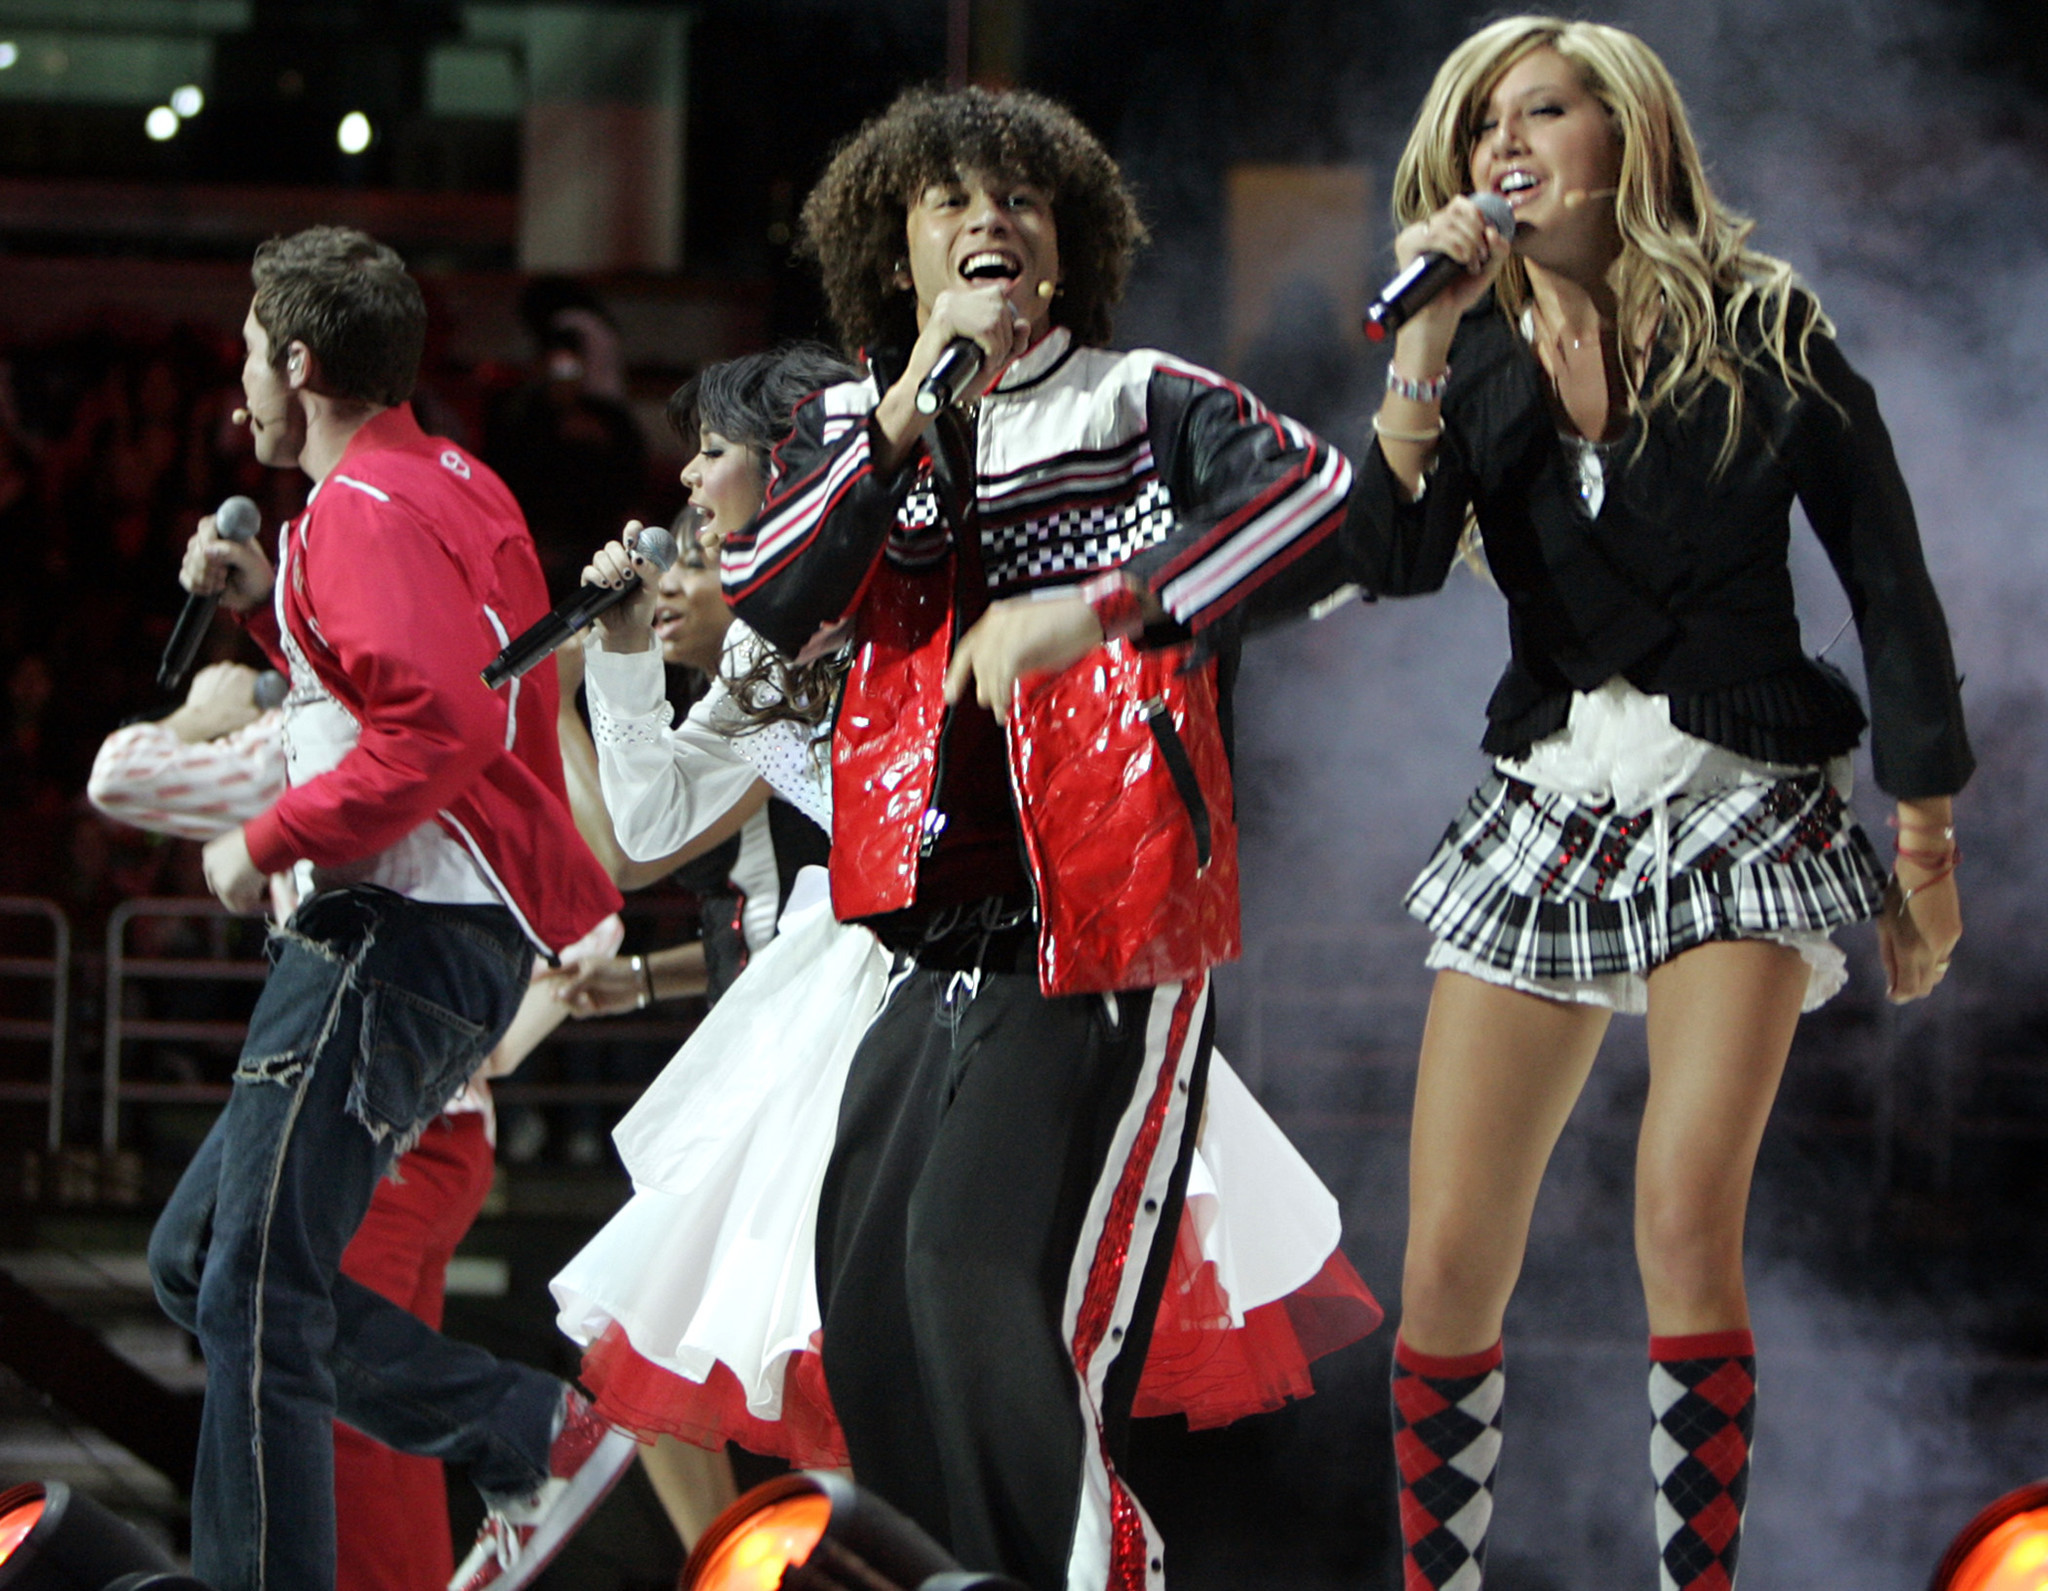 Corbin Bleu, left, and Ashley Tisdale, right, in High School Musical at the Honda Center in Anaheim on Jan. 26, 2007.